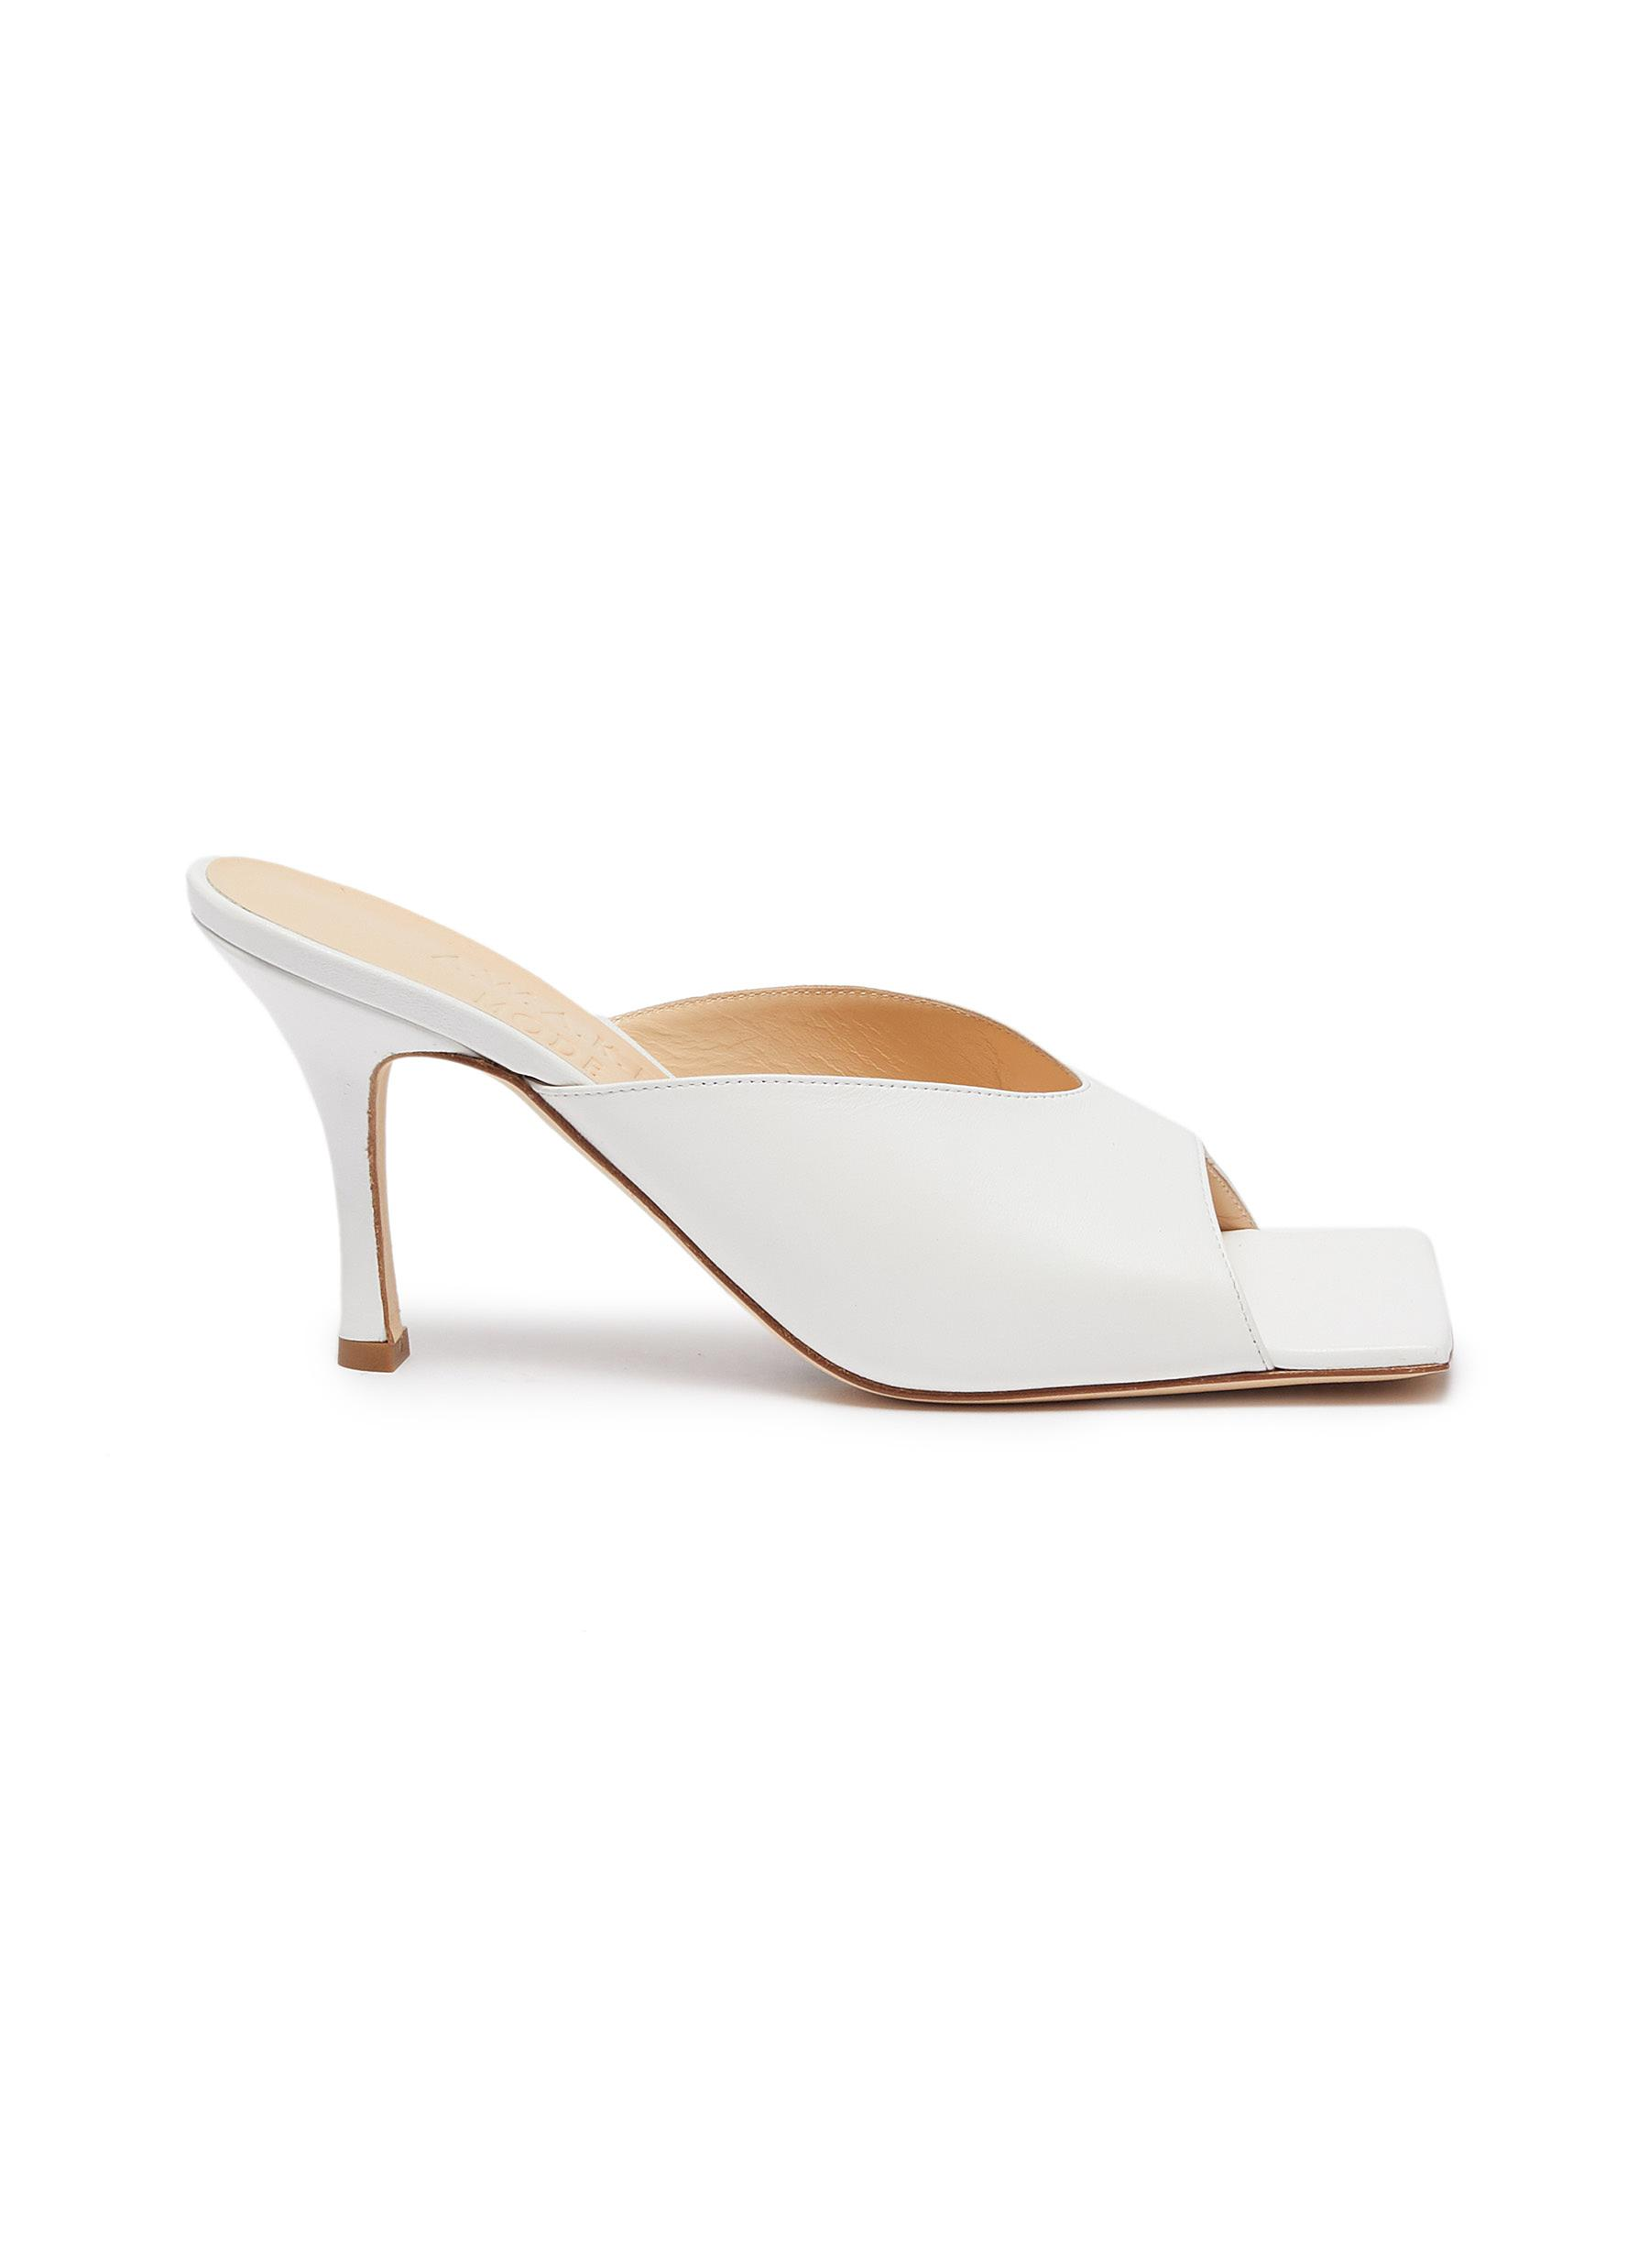 A.W.A.K.E. Mode High Heels MARIOM SQUARE TOE LEATHER MULES